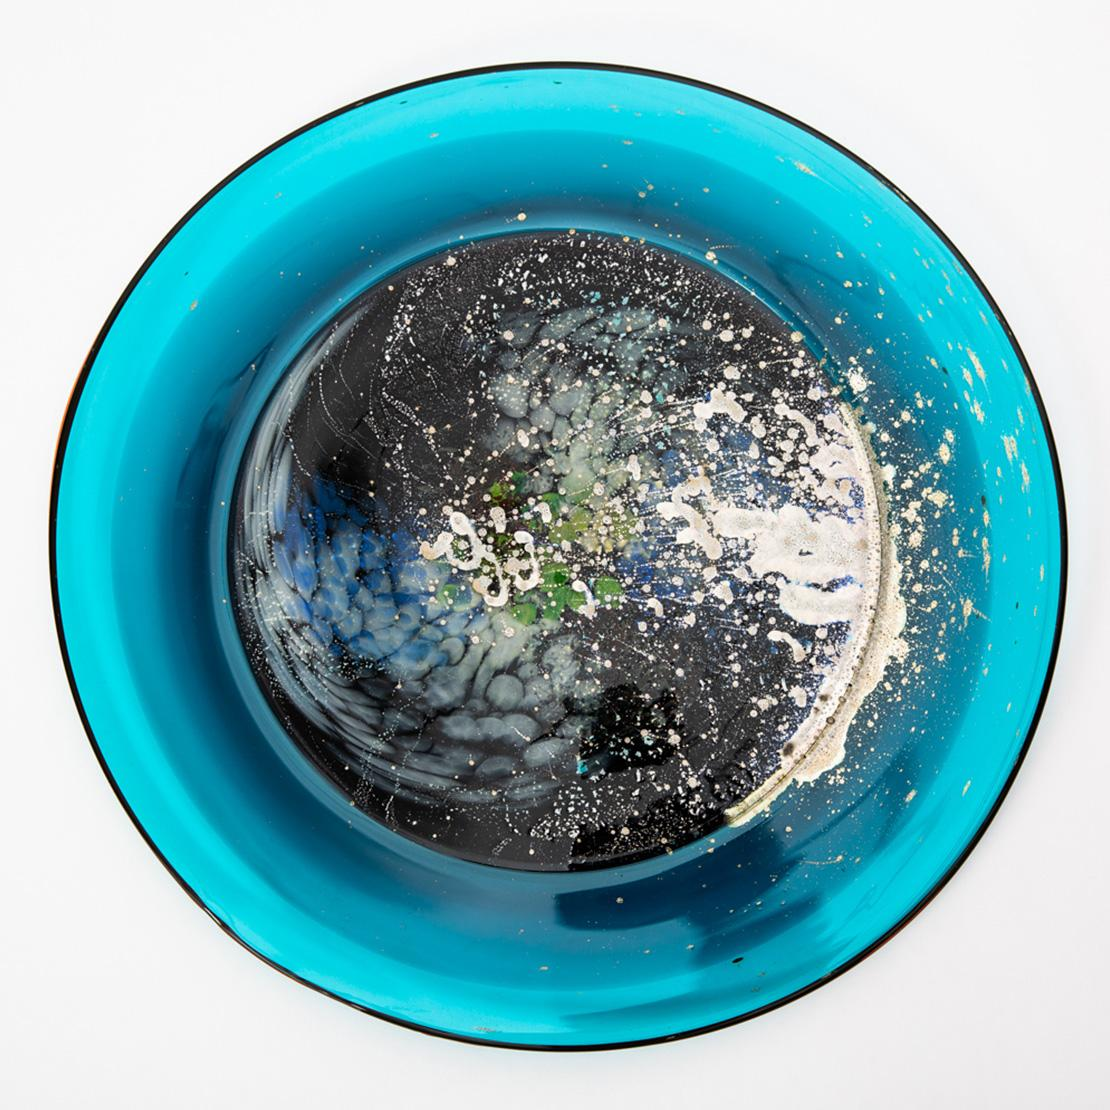 »Spinning galaxies 3«, Gillian McFarland, Glass & Nitrates